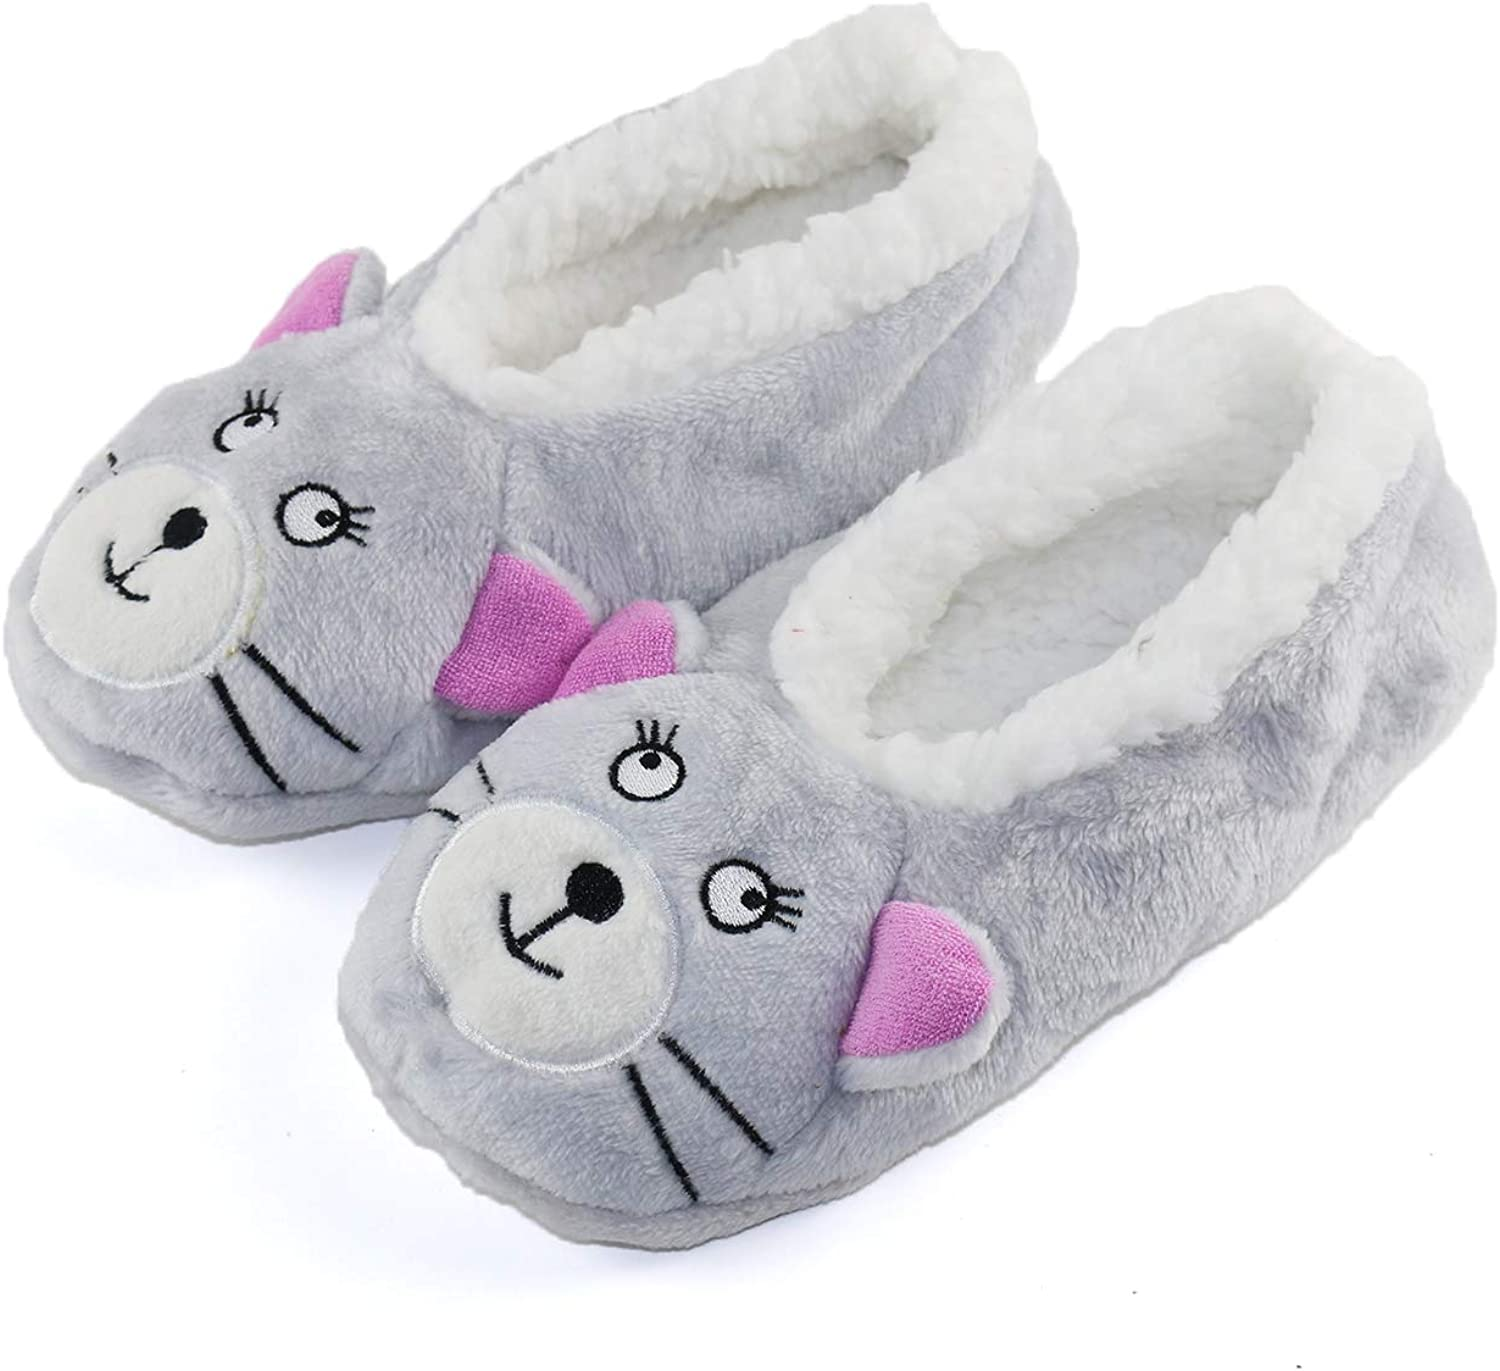 GLENMEARL Womens Warm Cozy and Lovely Animal Non-Skid Knit Home Floor Slippers Socks for Adults Girls